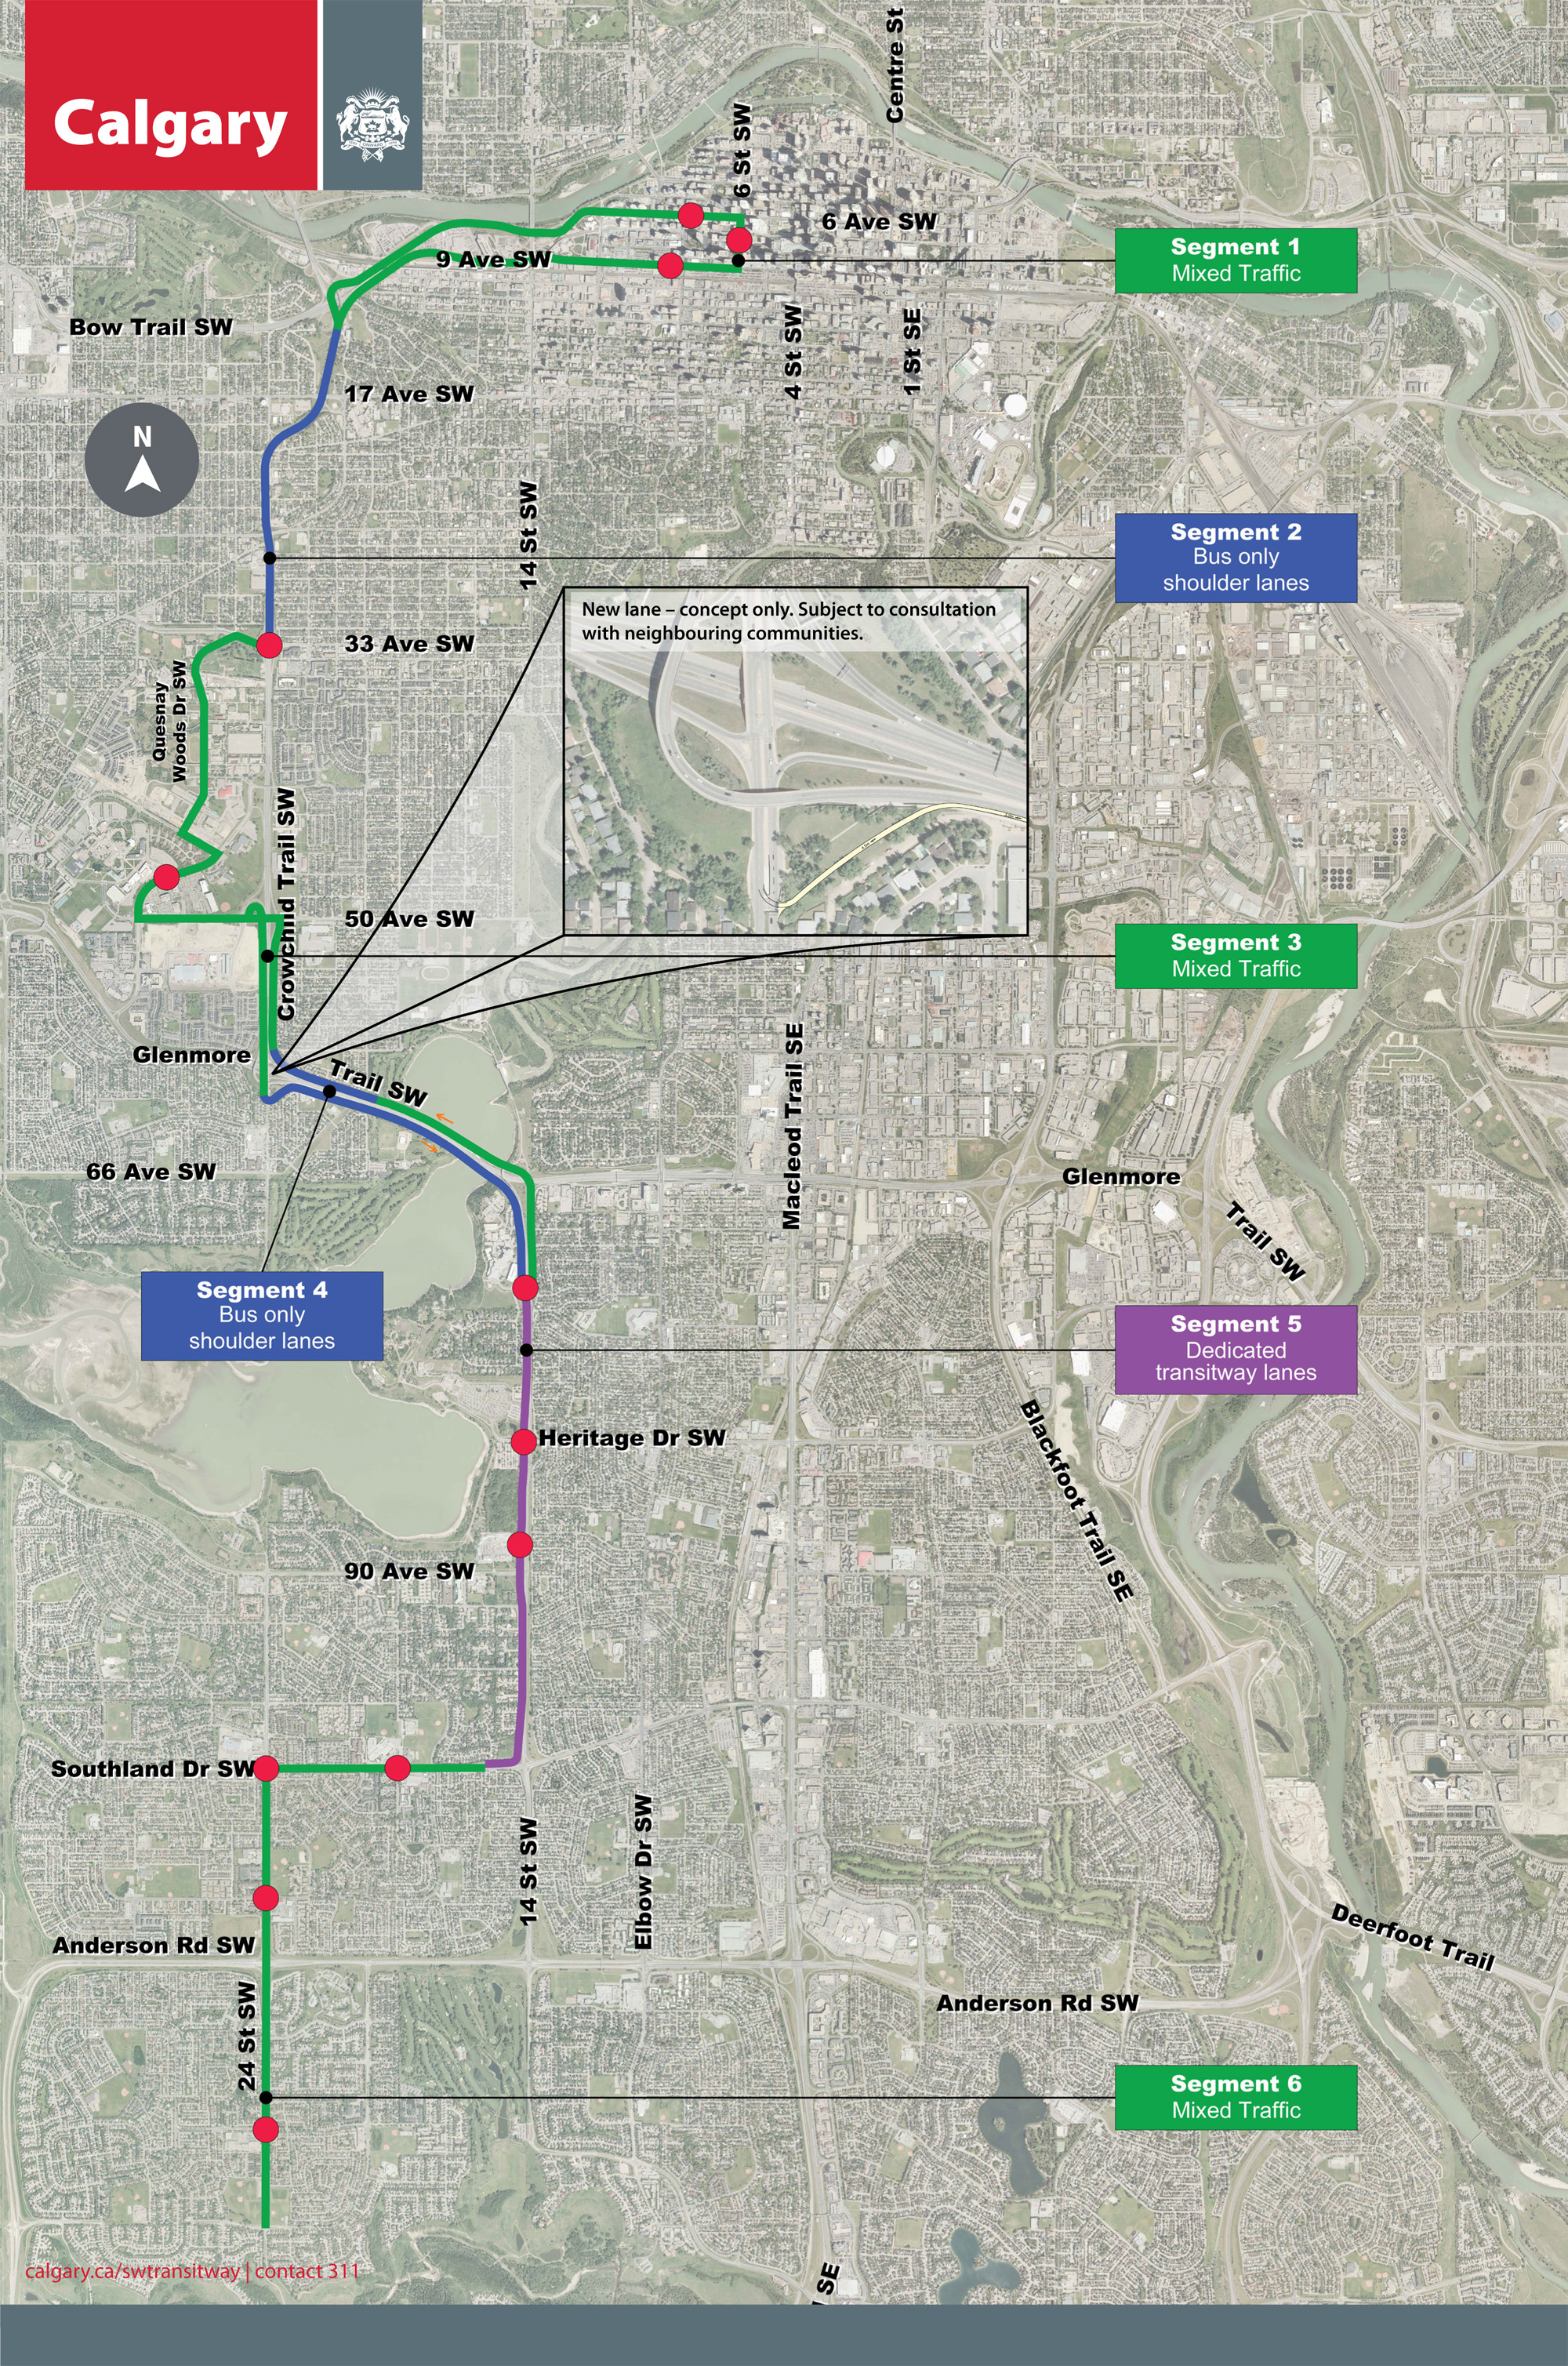 Southwest BRT Route Map and Station Locations